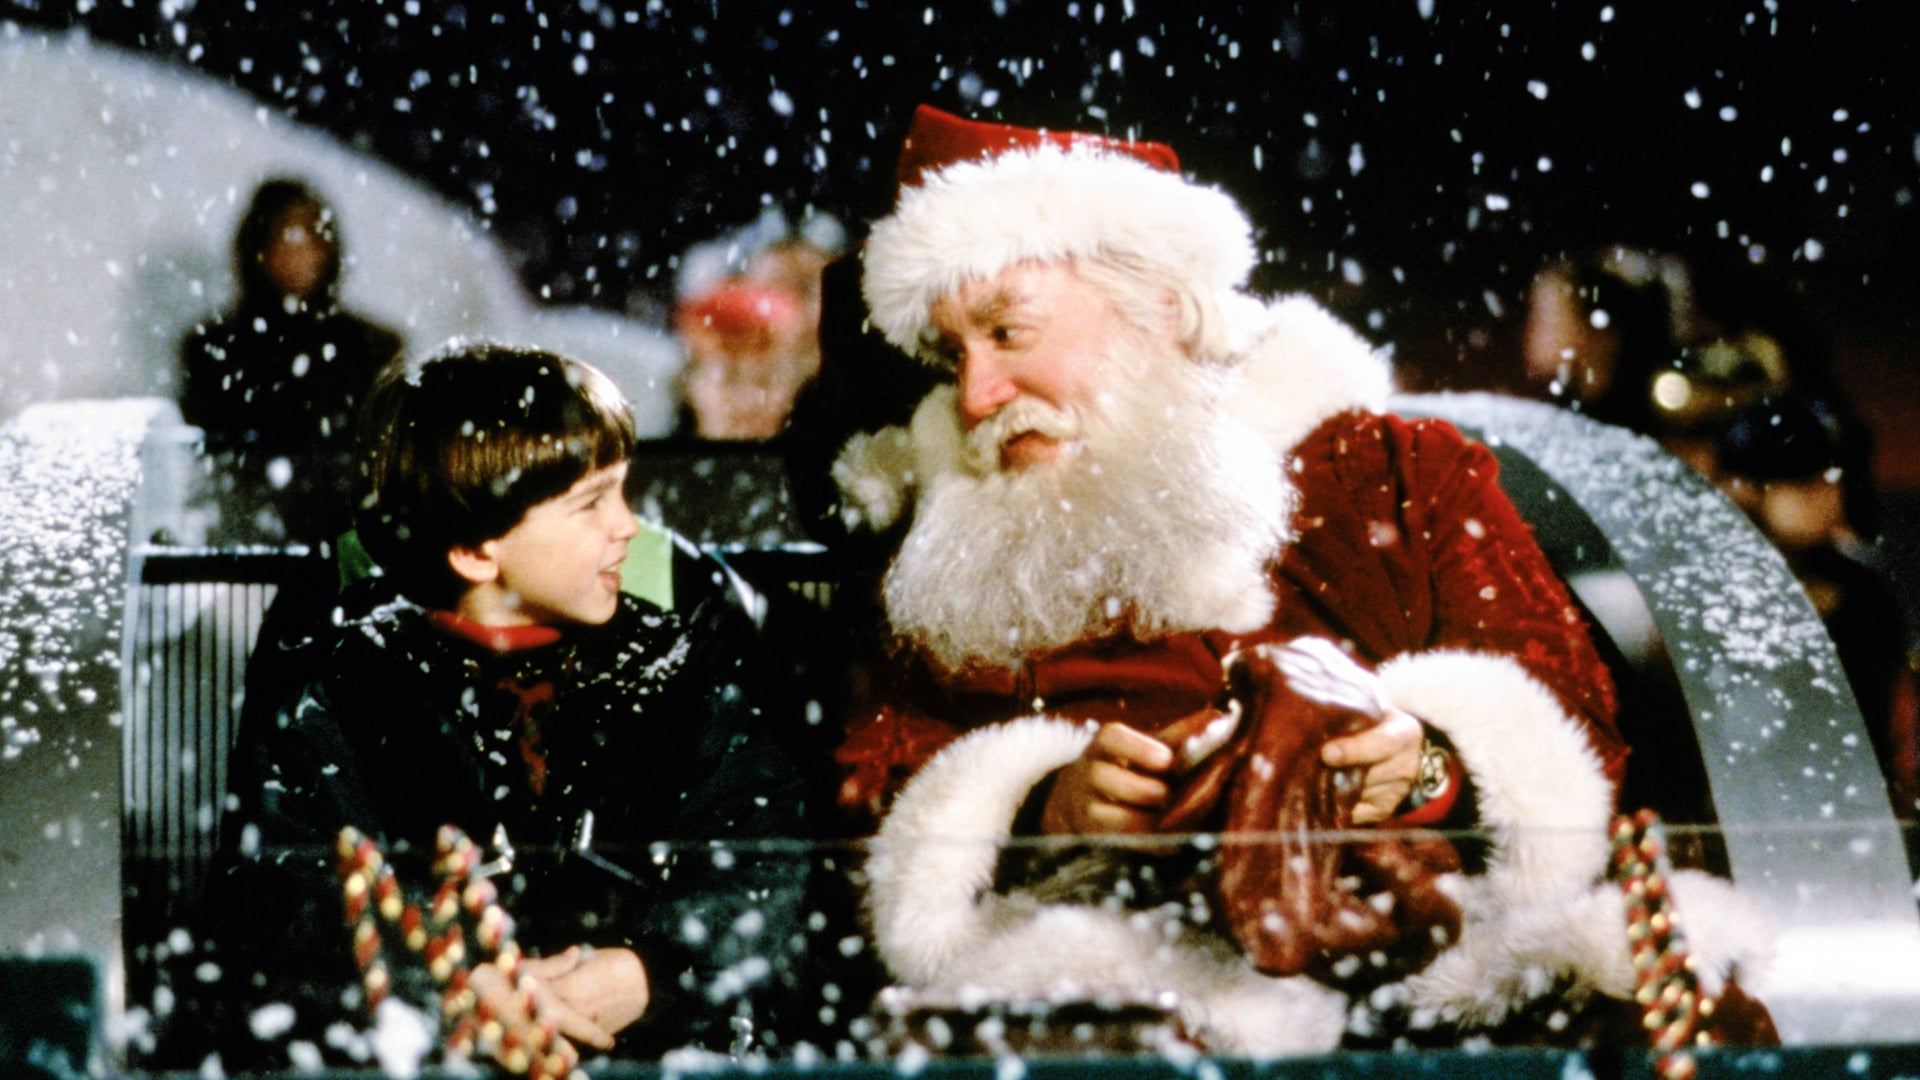 Inside Story: The Santa Clause